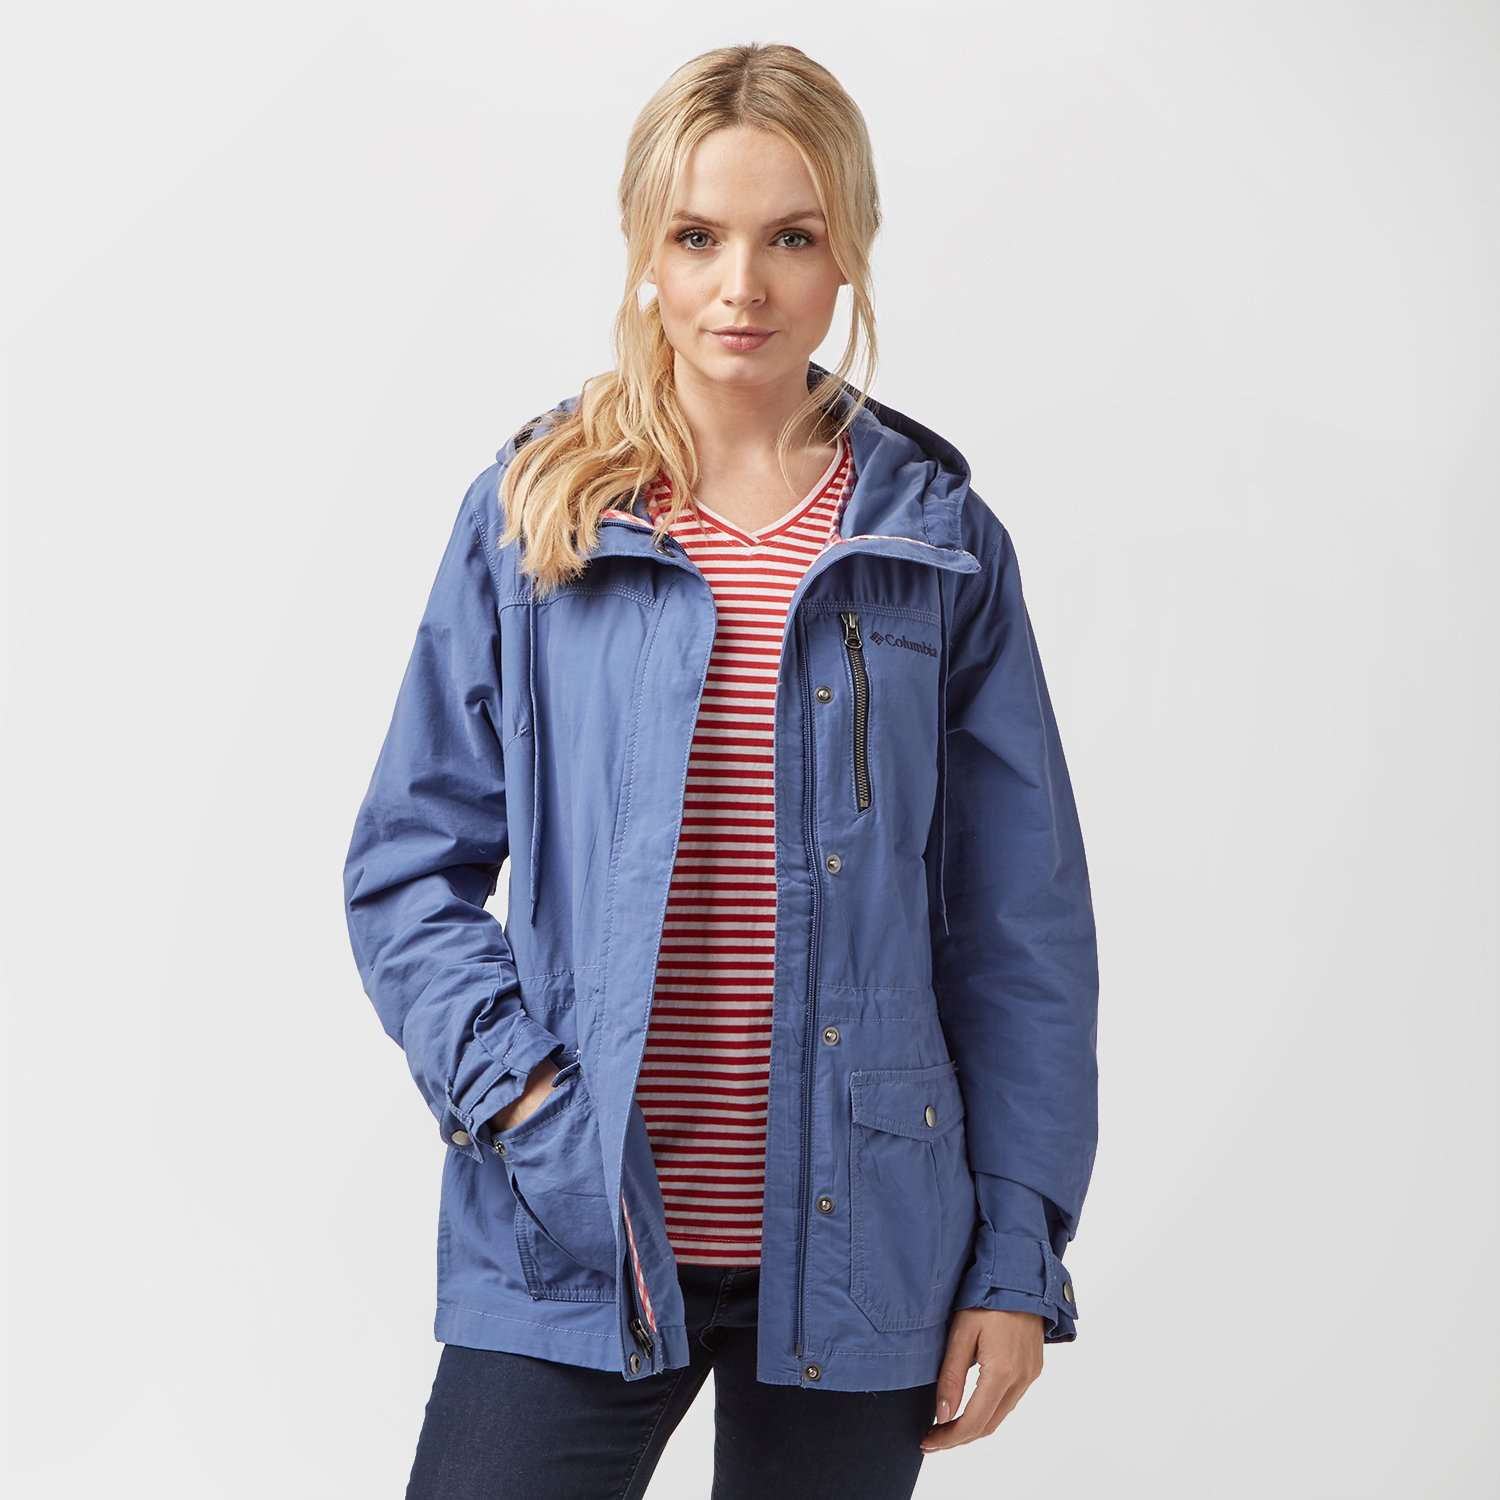 COLUMBIA Women's Alter Valley Jacket